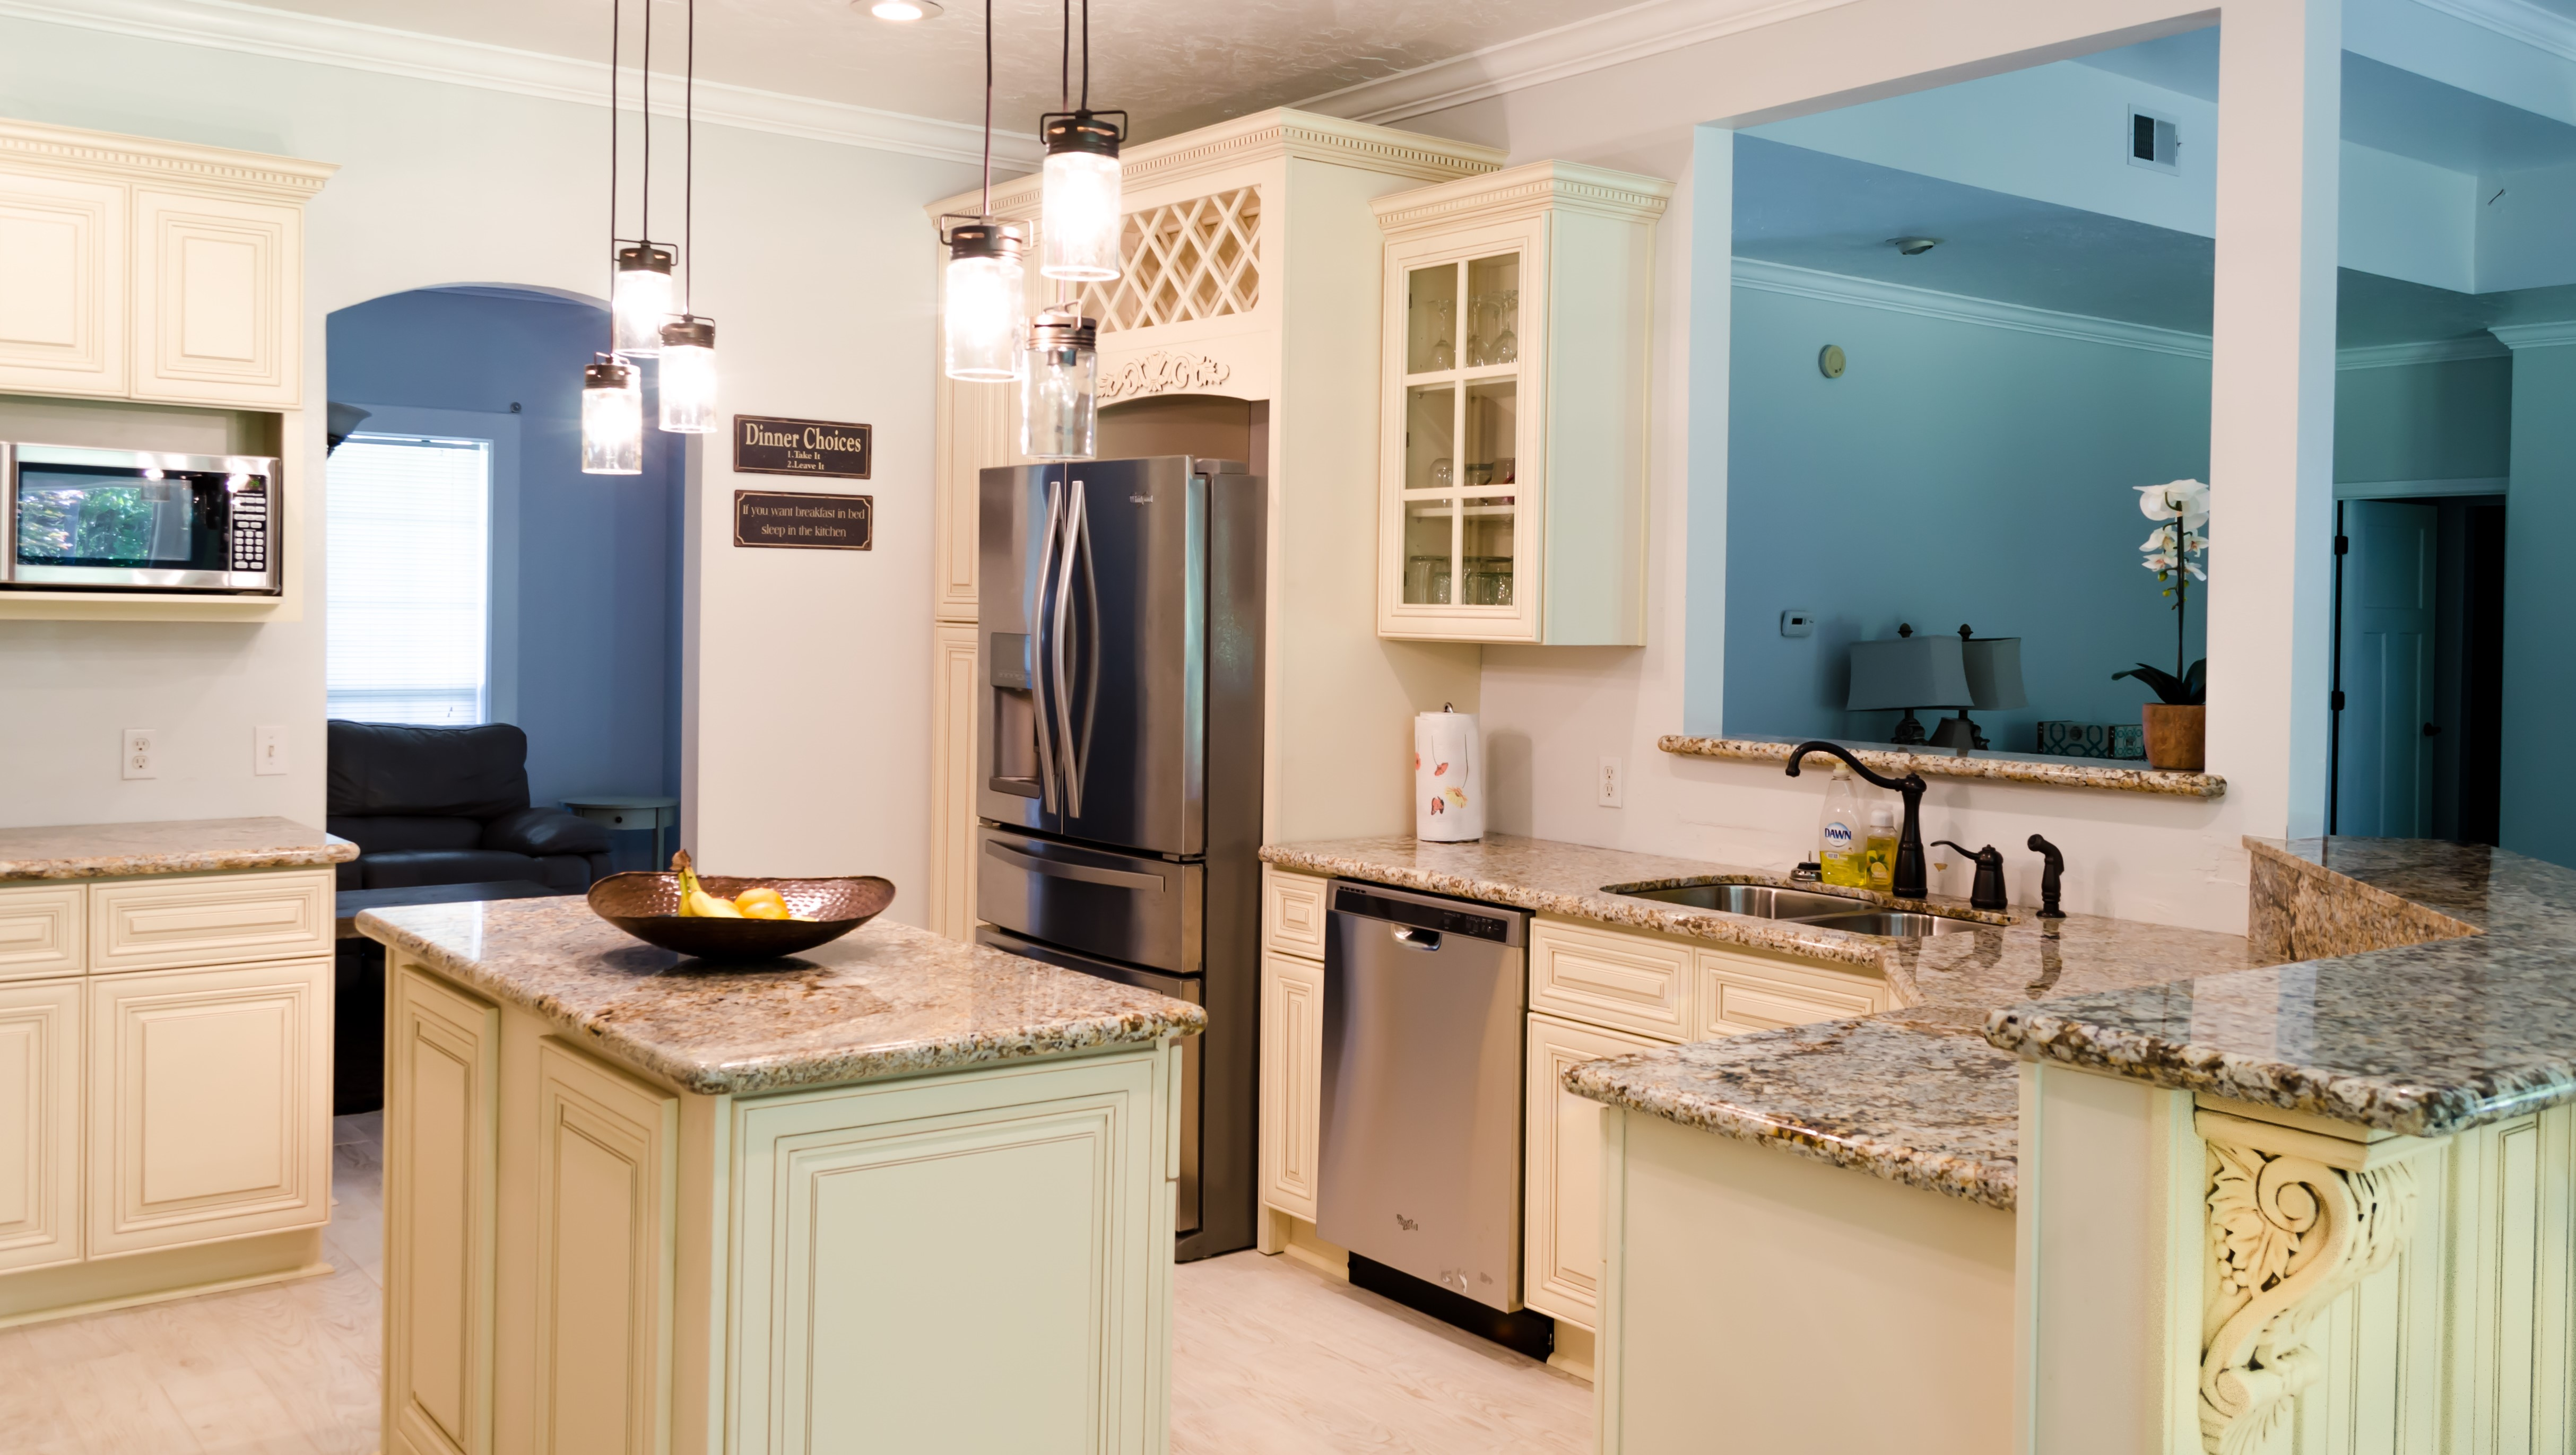 Gallery Home Decor Kitchen and Bath